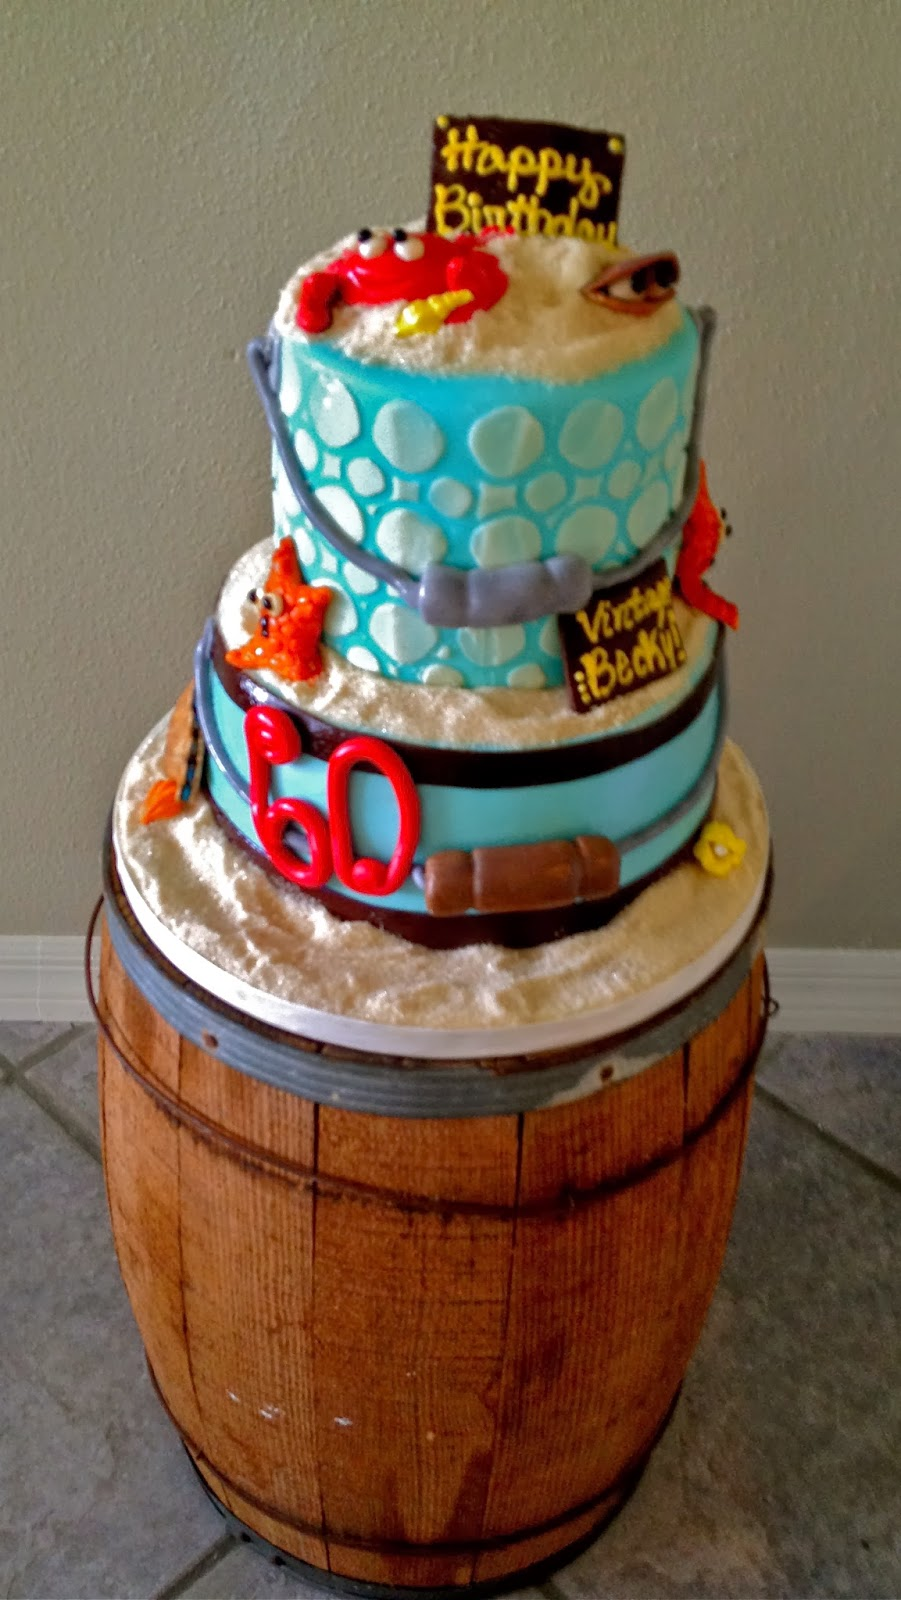 75th Birthday Cakes - Ideas for Show-Stopping Birthday Cakes |Beach Themed Birthday Cakes